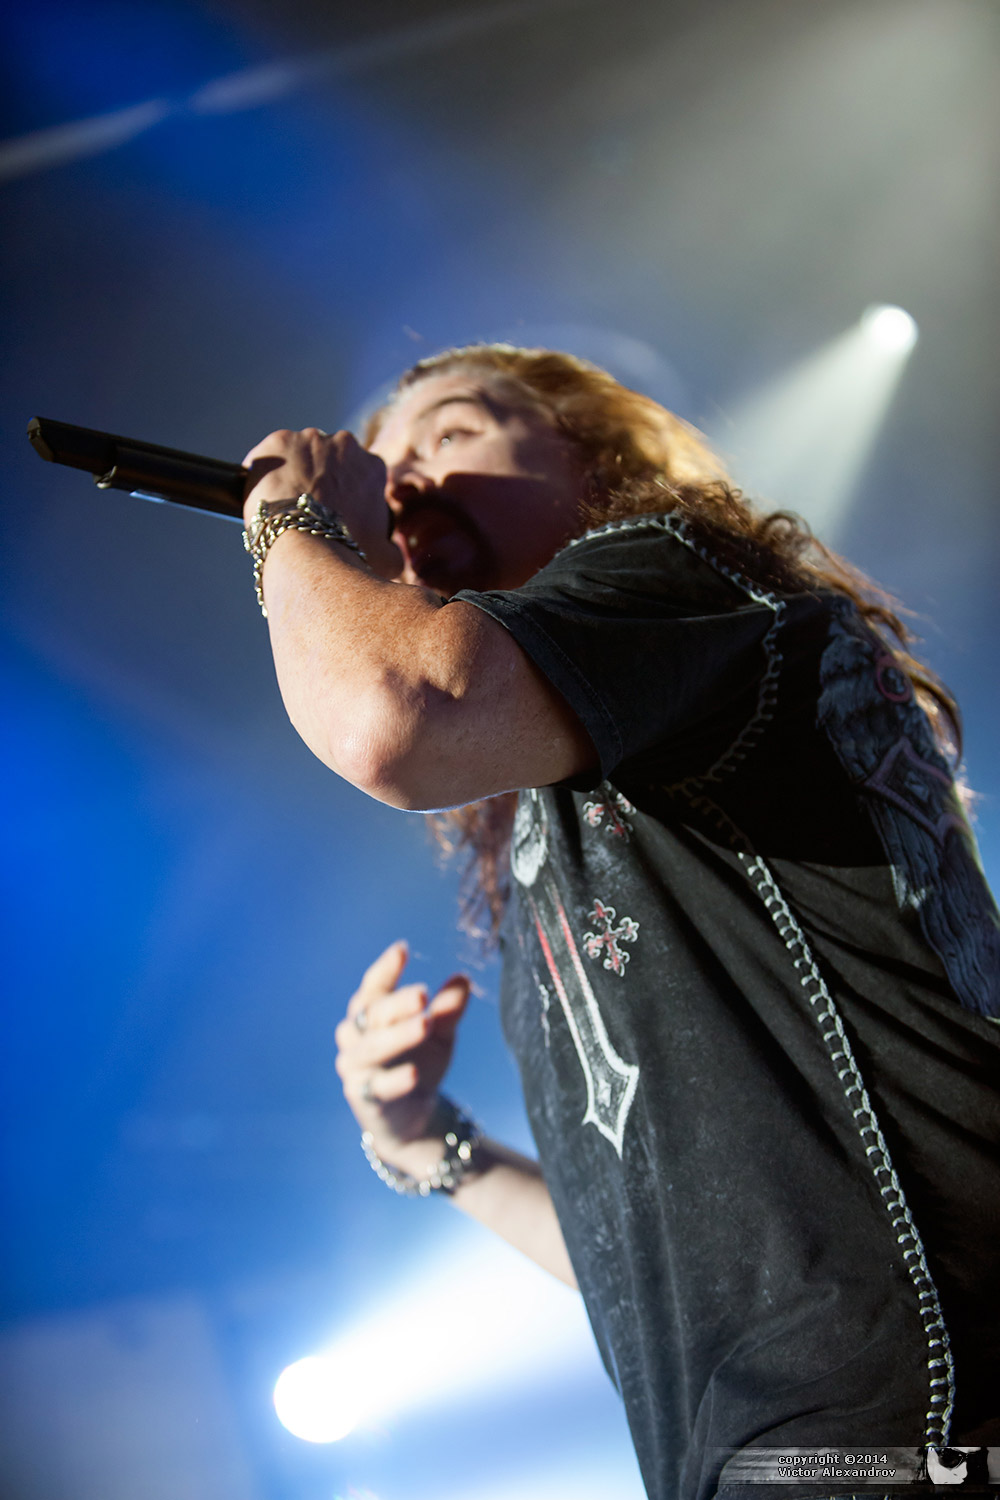 James LaBrie